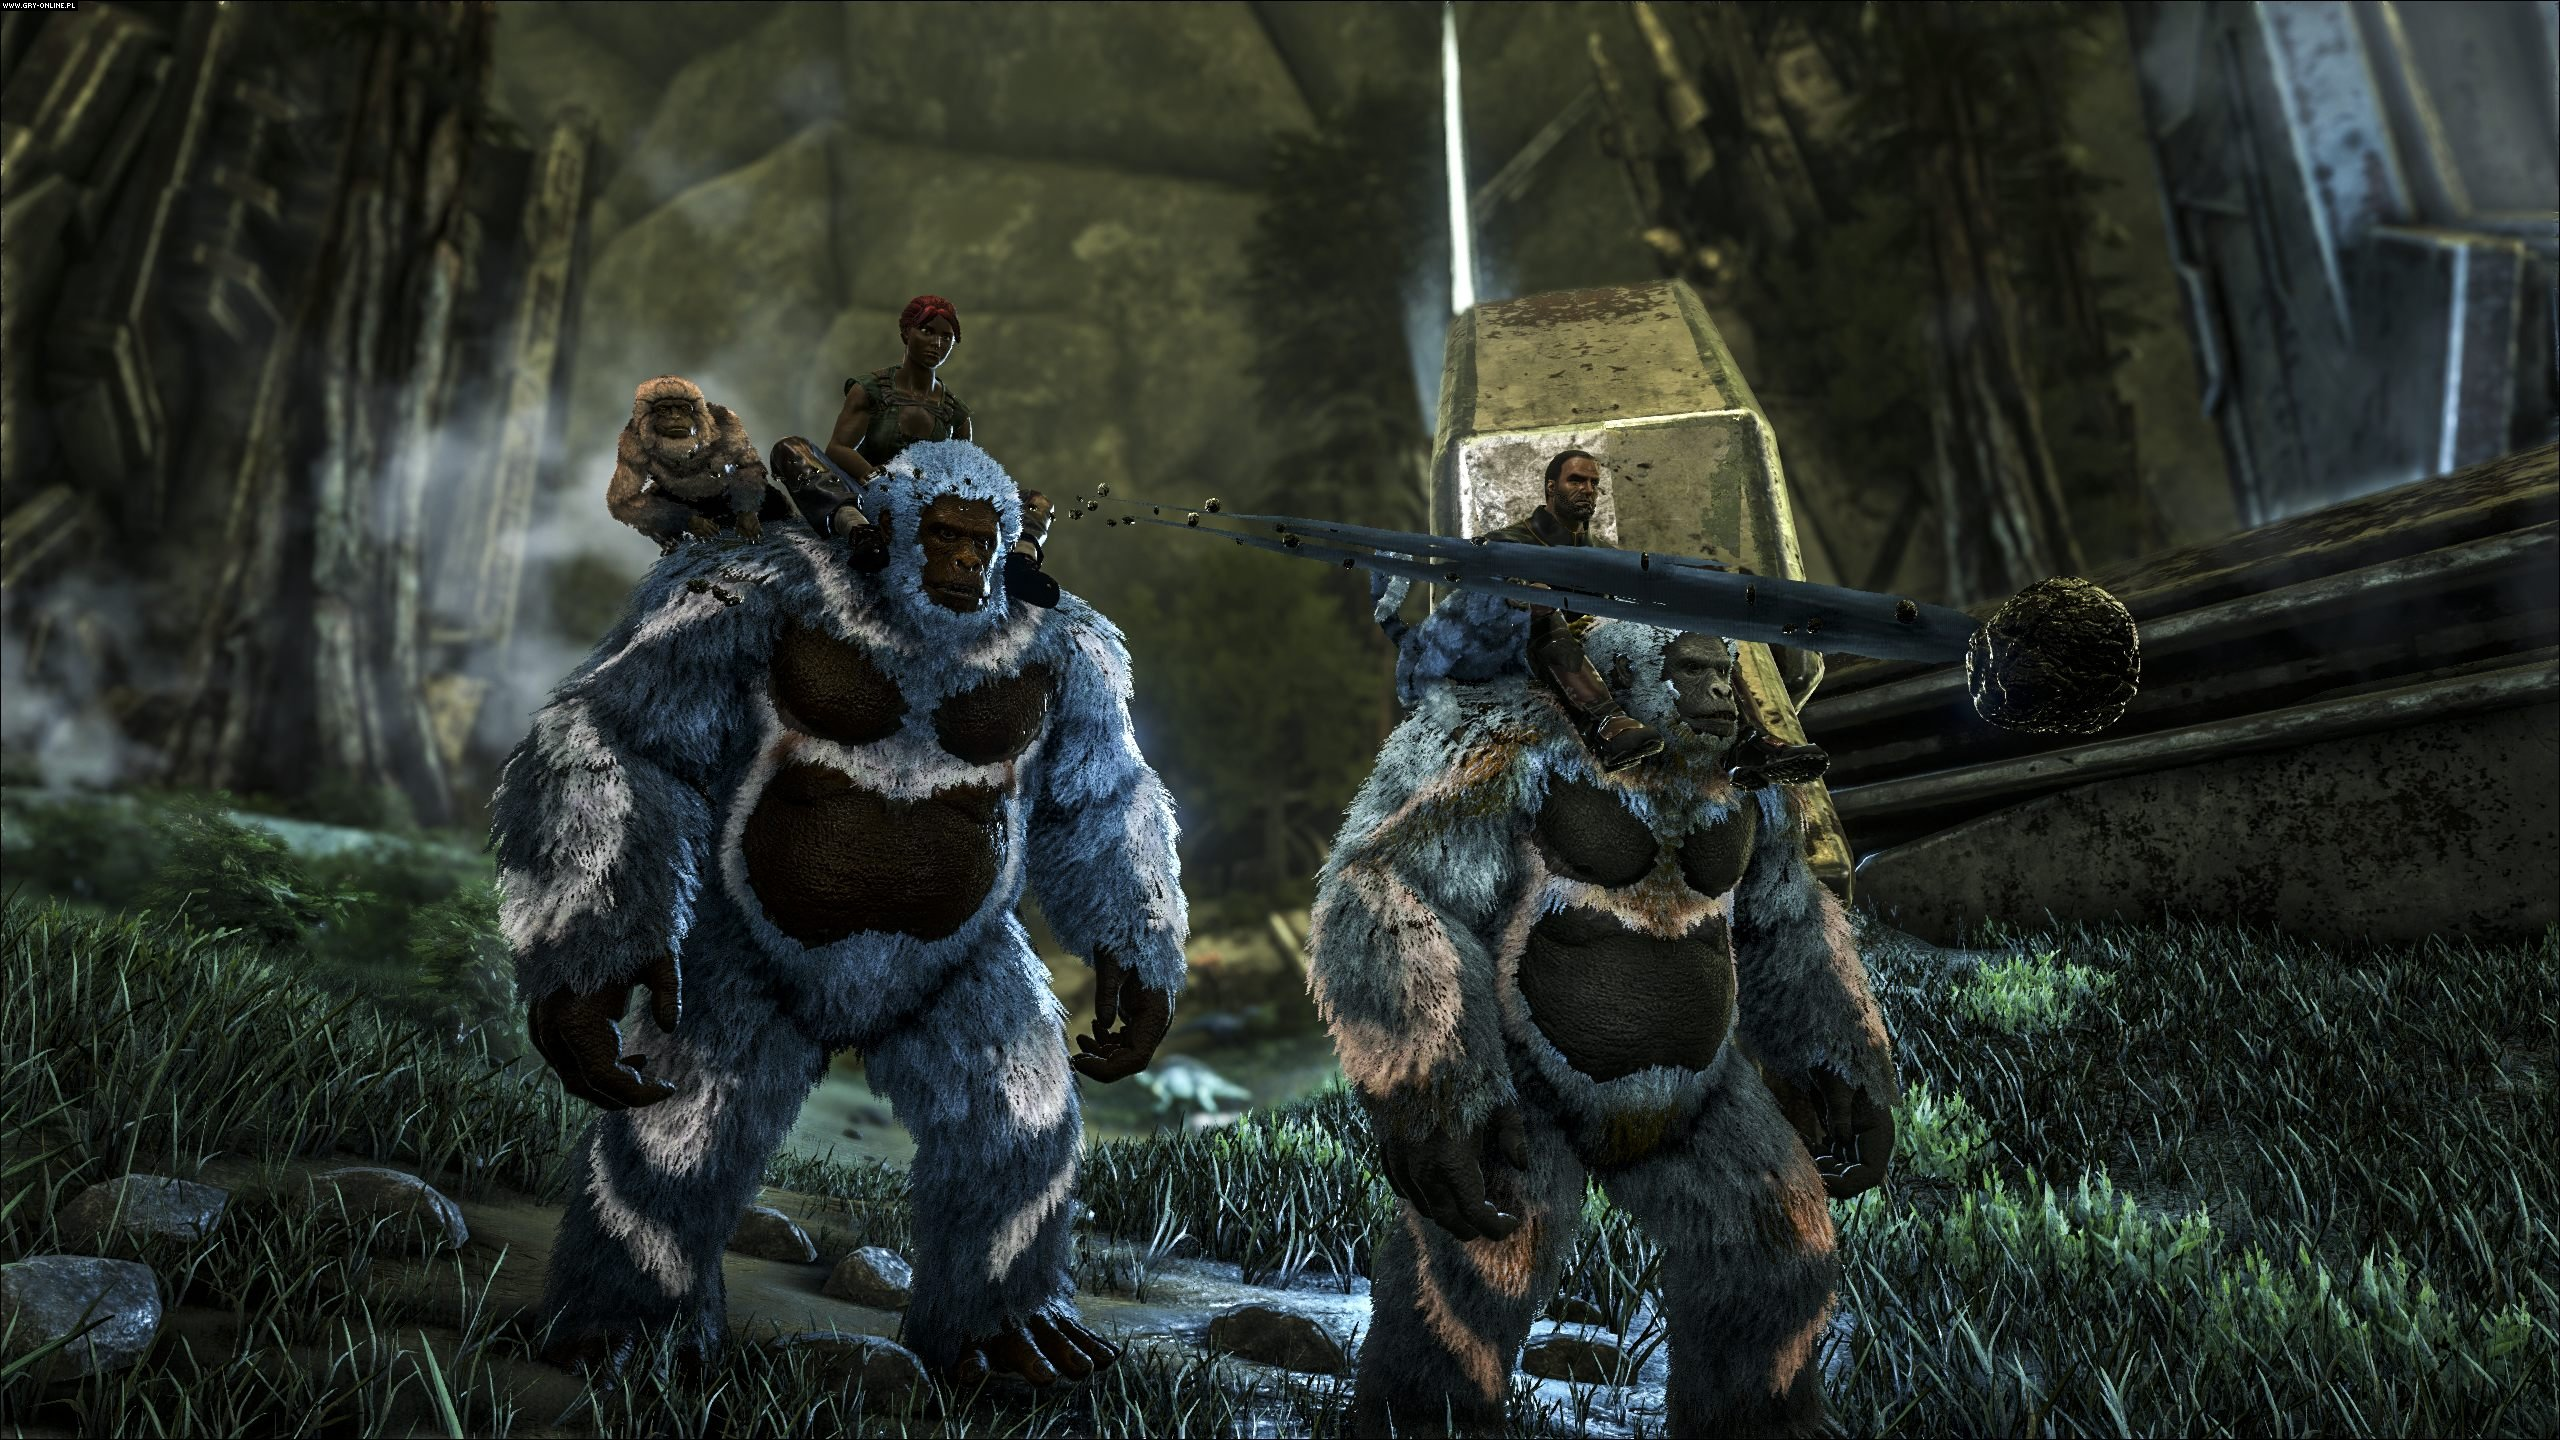 ARK: Survival Evolved PC, PS4, XONE Gry Screen 24/148, Studio Wildcard